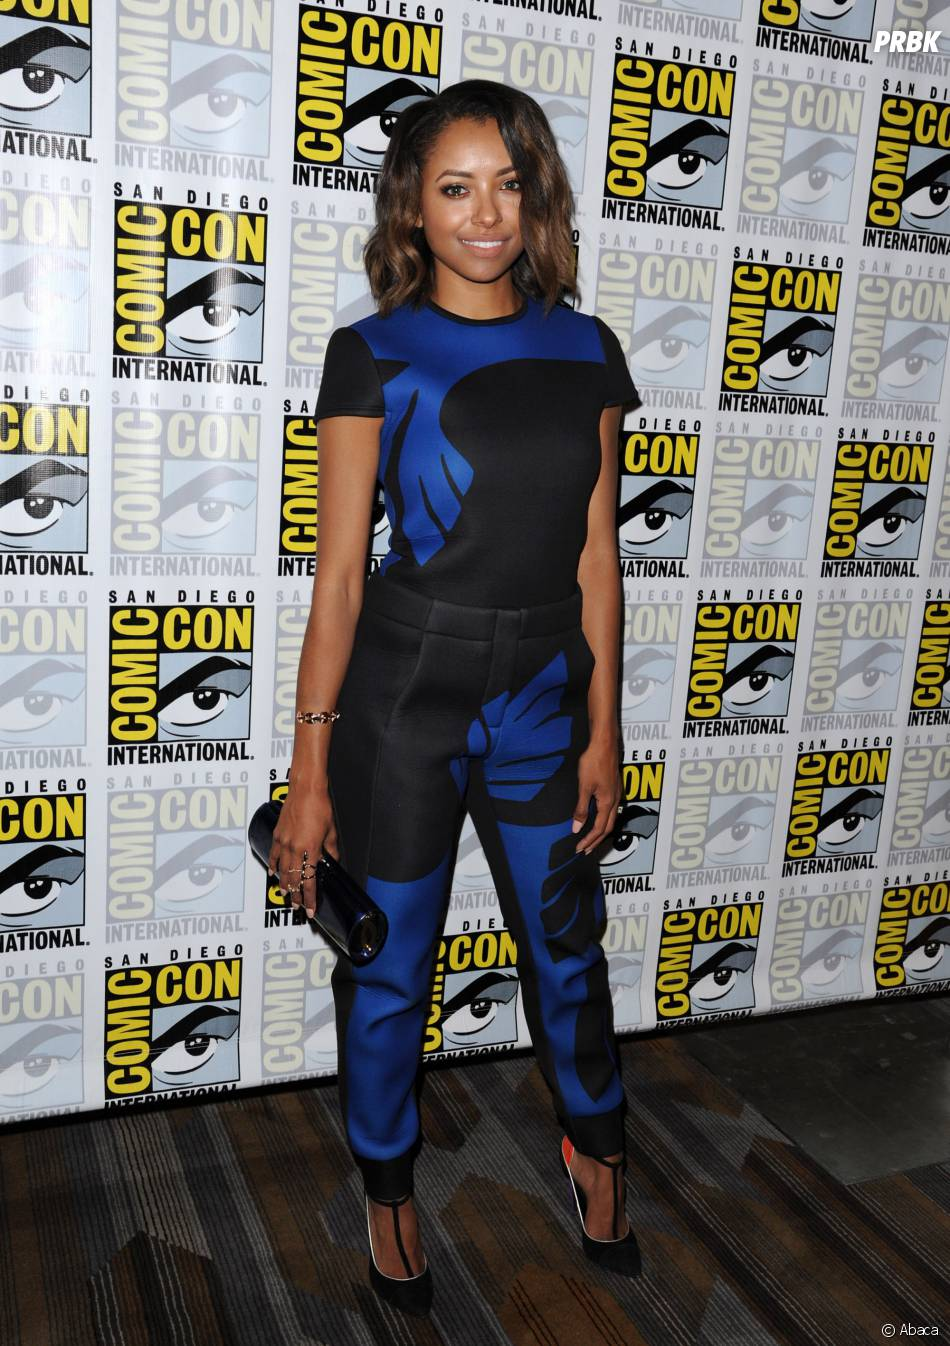 Kat Graham en mode carré flou au Comic Con 2014